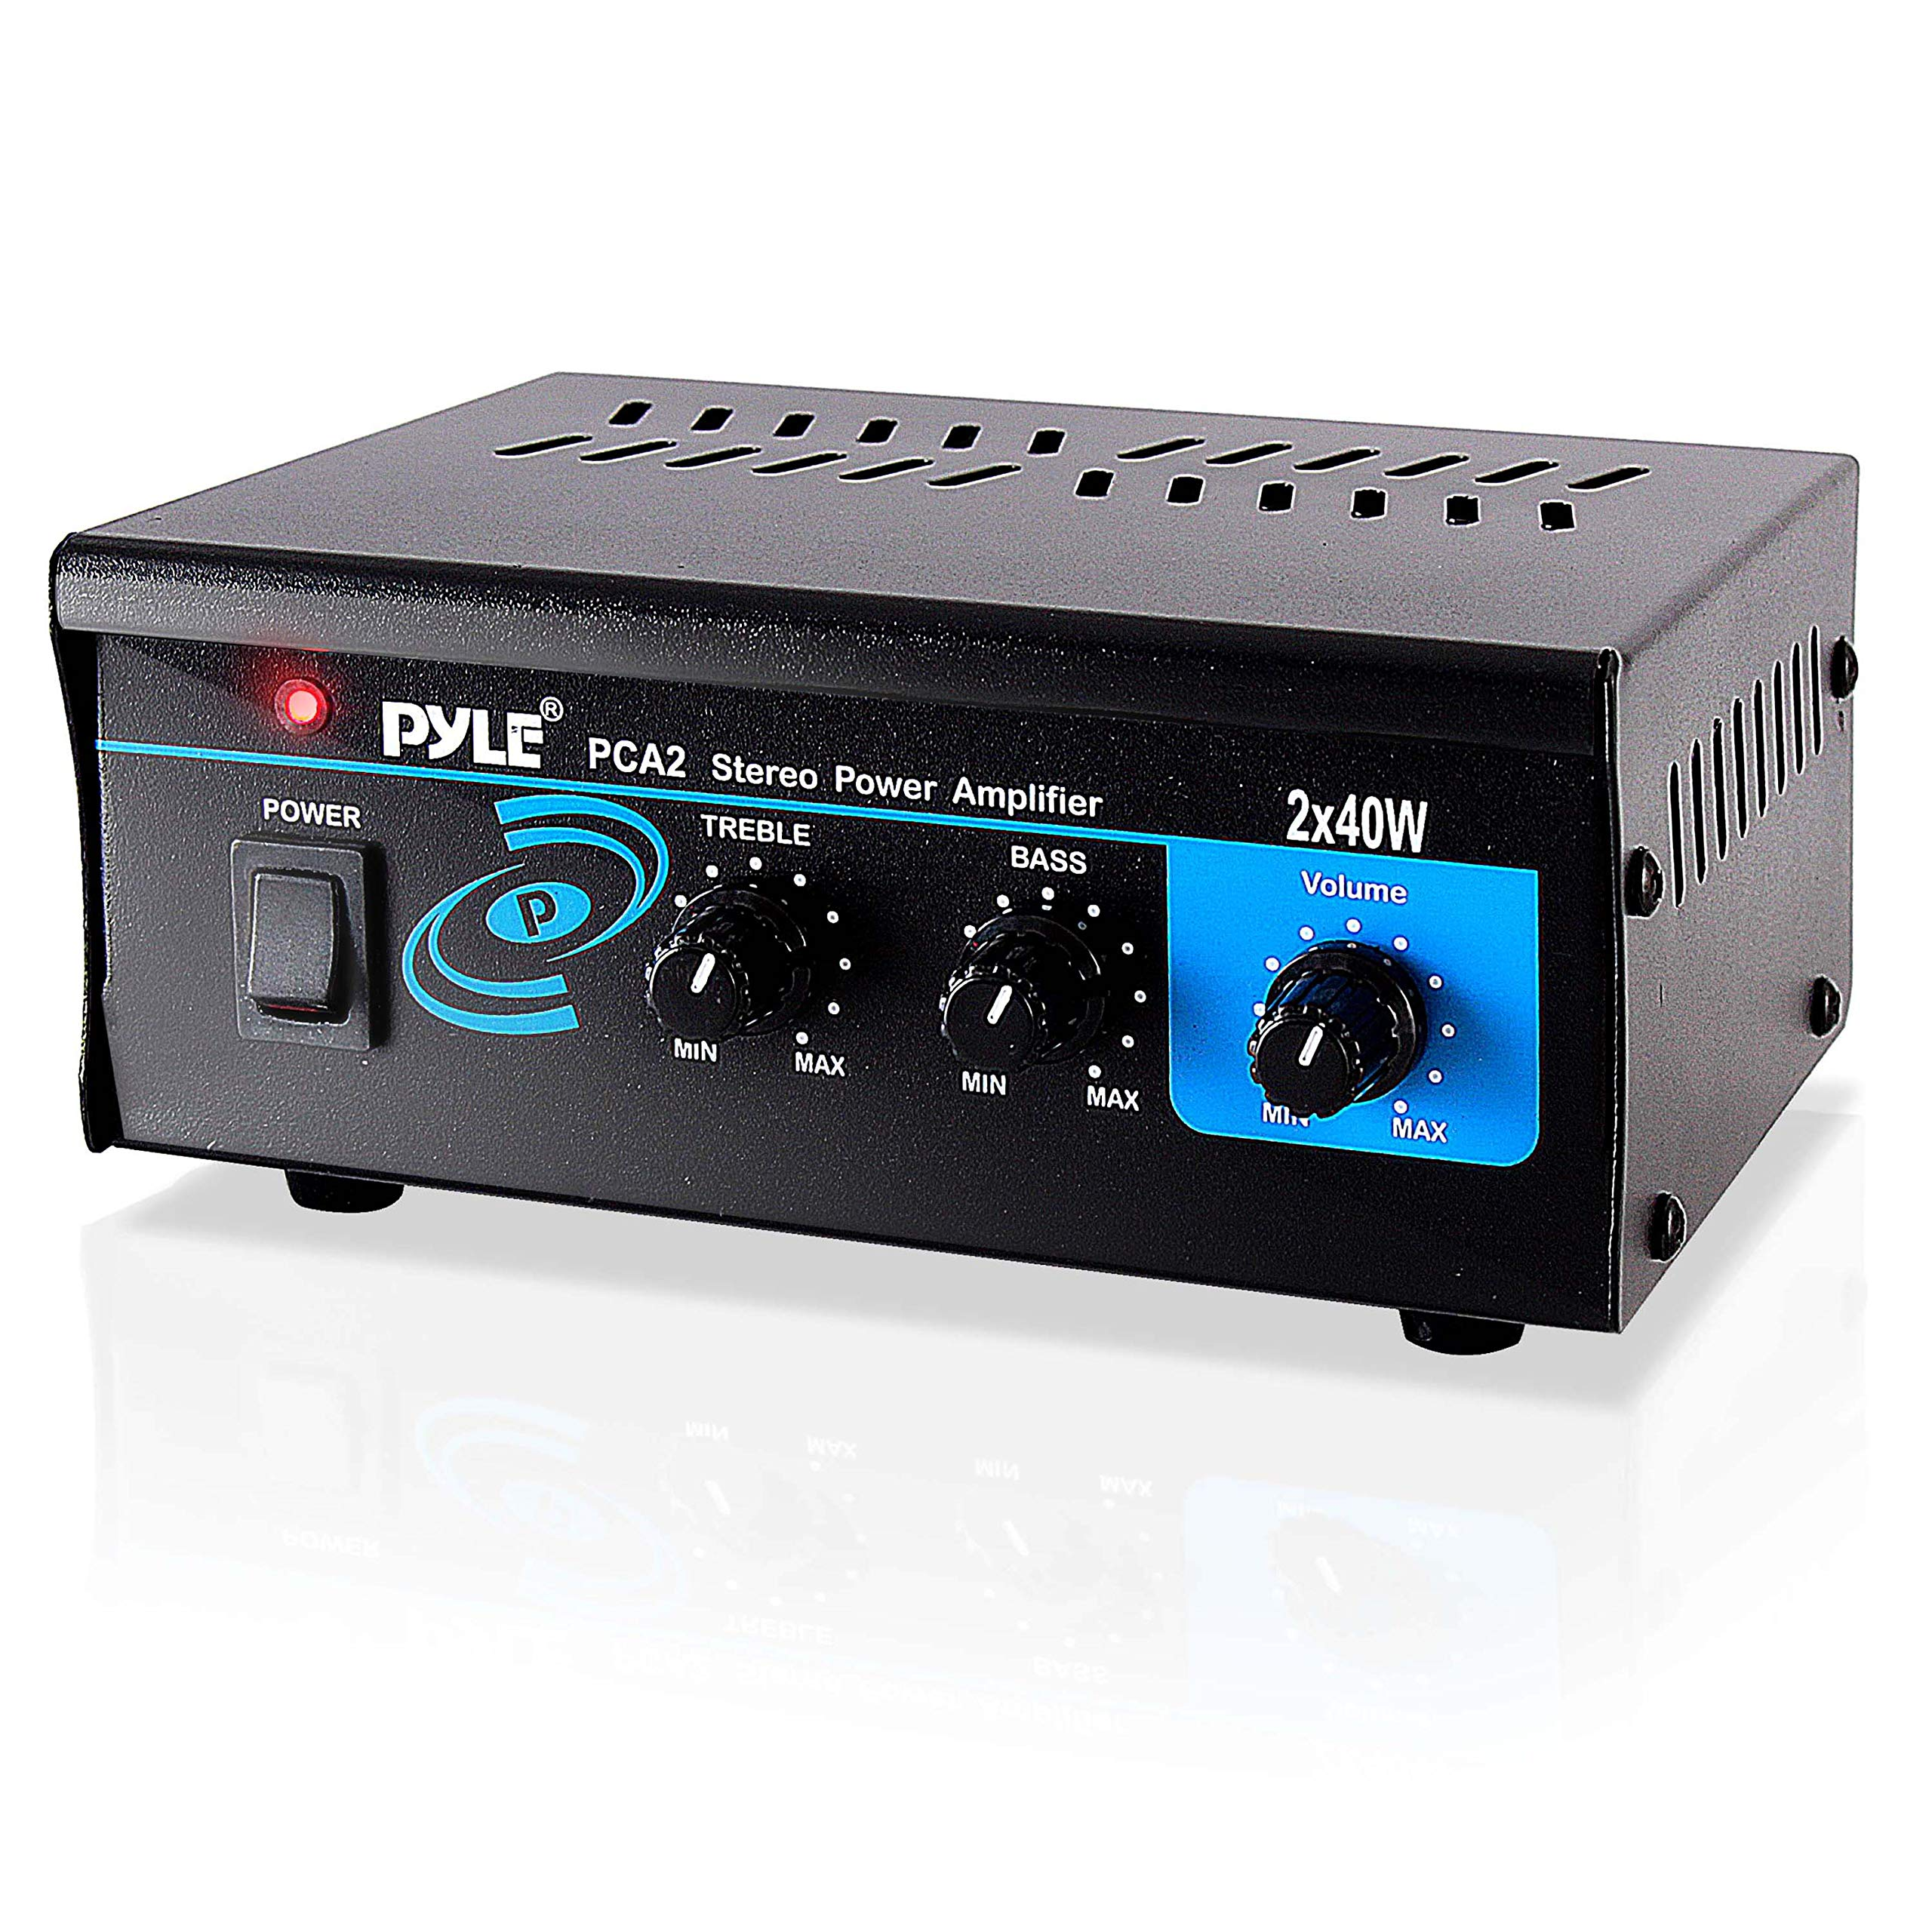 Home Audio Power Amplifier System - 2X40W Mini Portable Dual Channel Surround Sound Stereo Receiver Box w/ LED - For Amplified Subwoofer Speakers, CD DVD Player, Theater via 3.5mm RCA - Pyle PCA2